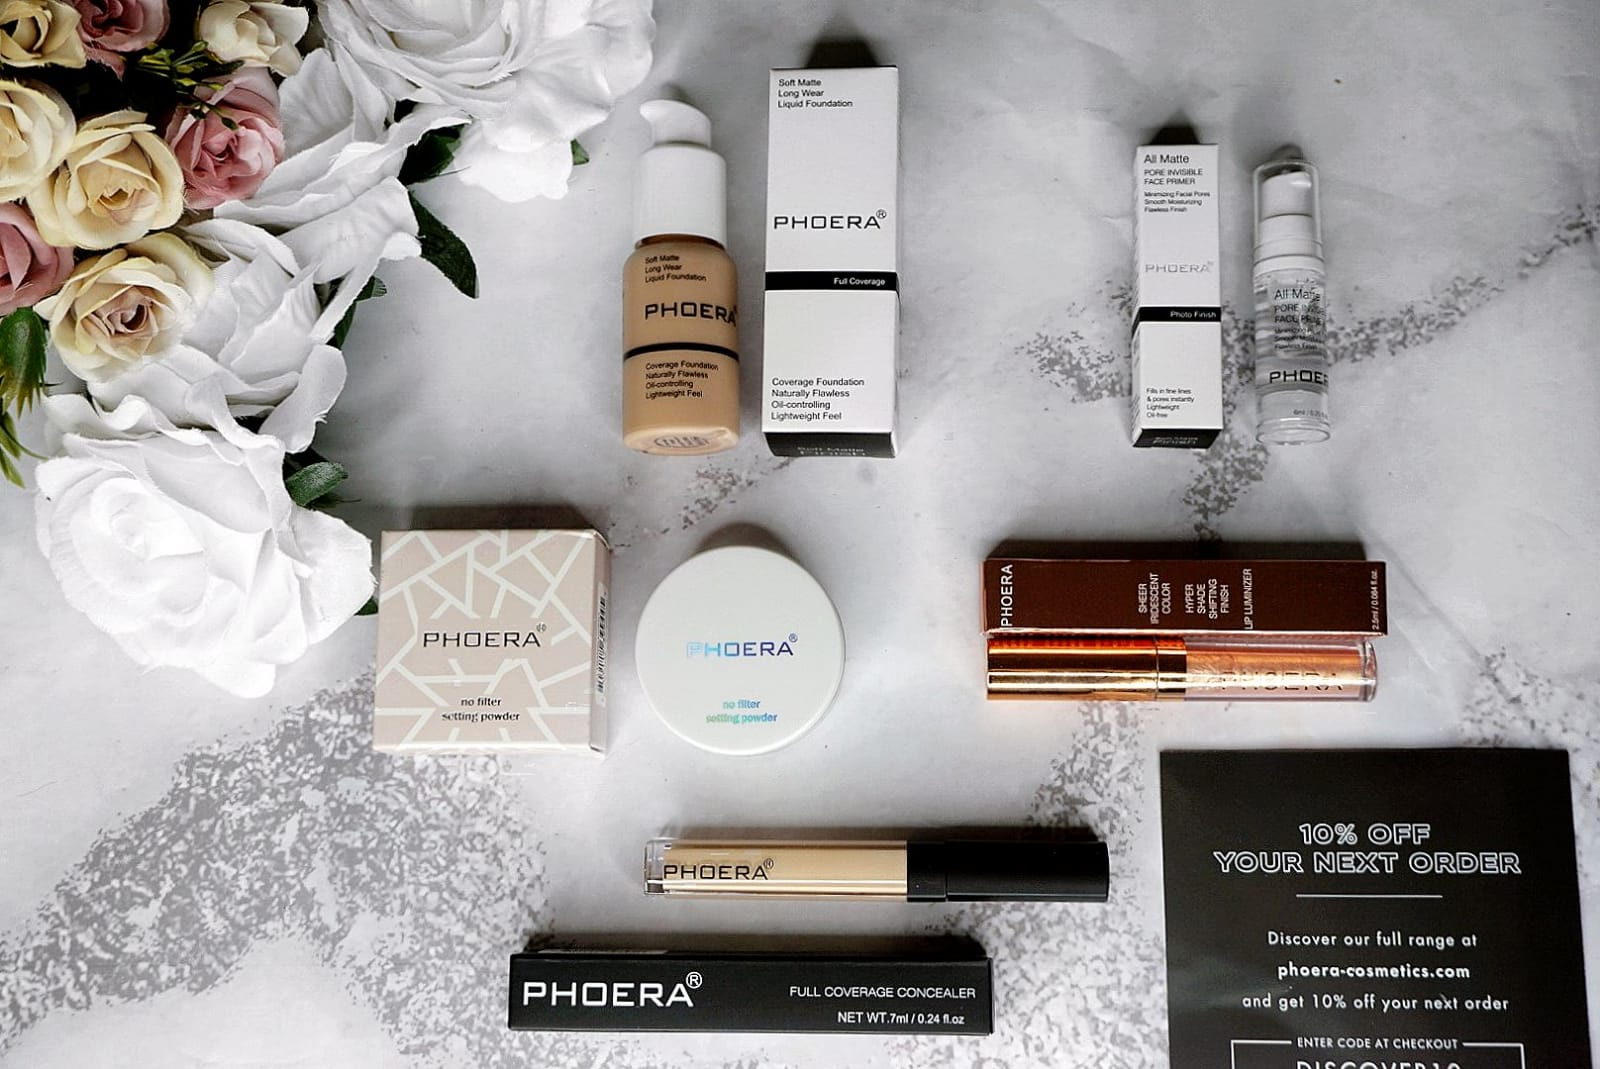 OFFICIAL UK LAUNCH OF PHOERA COSMETICS